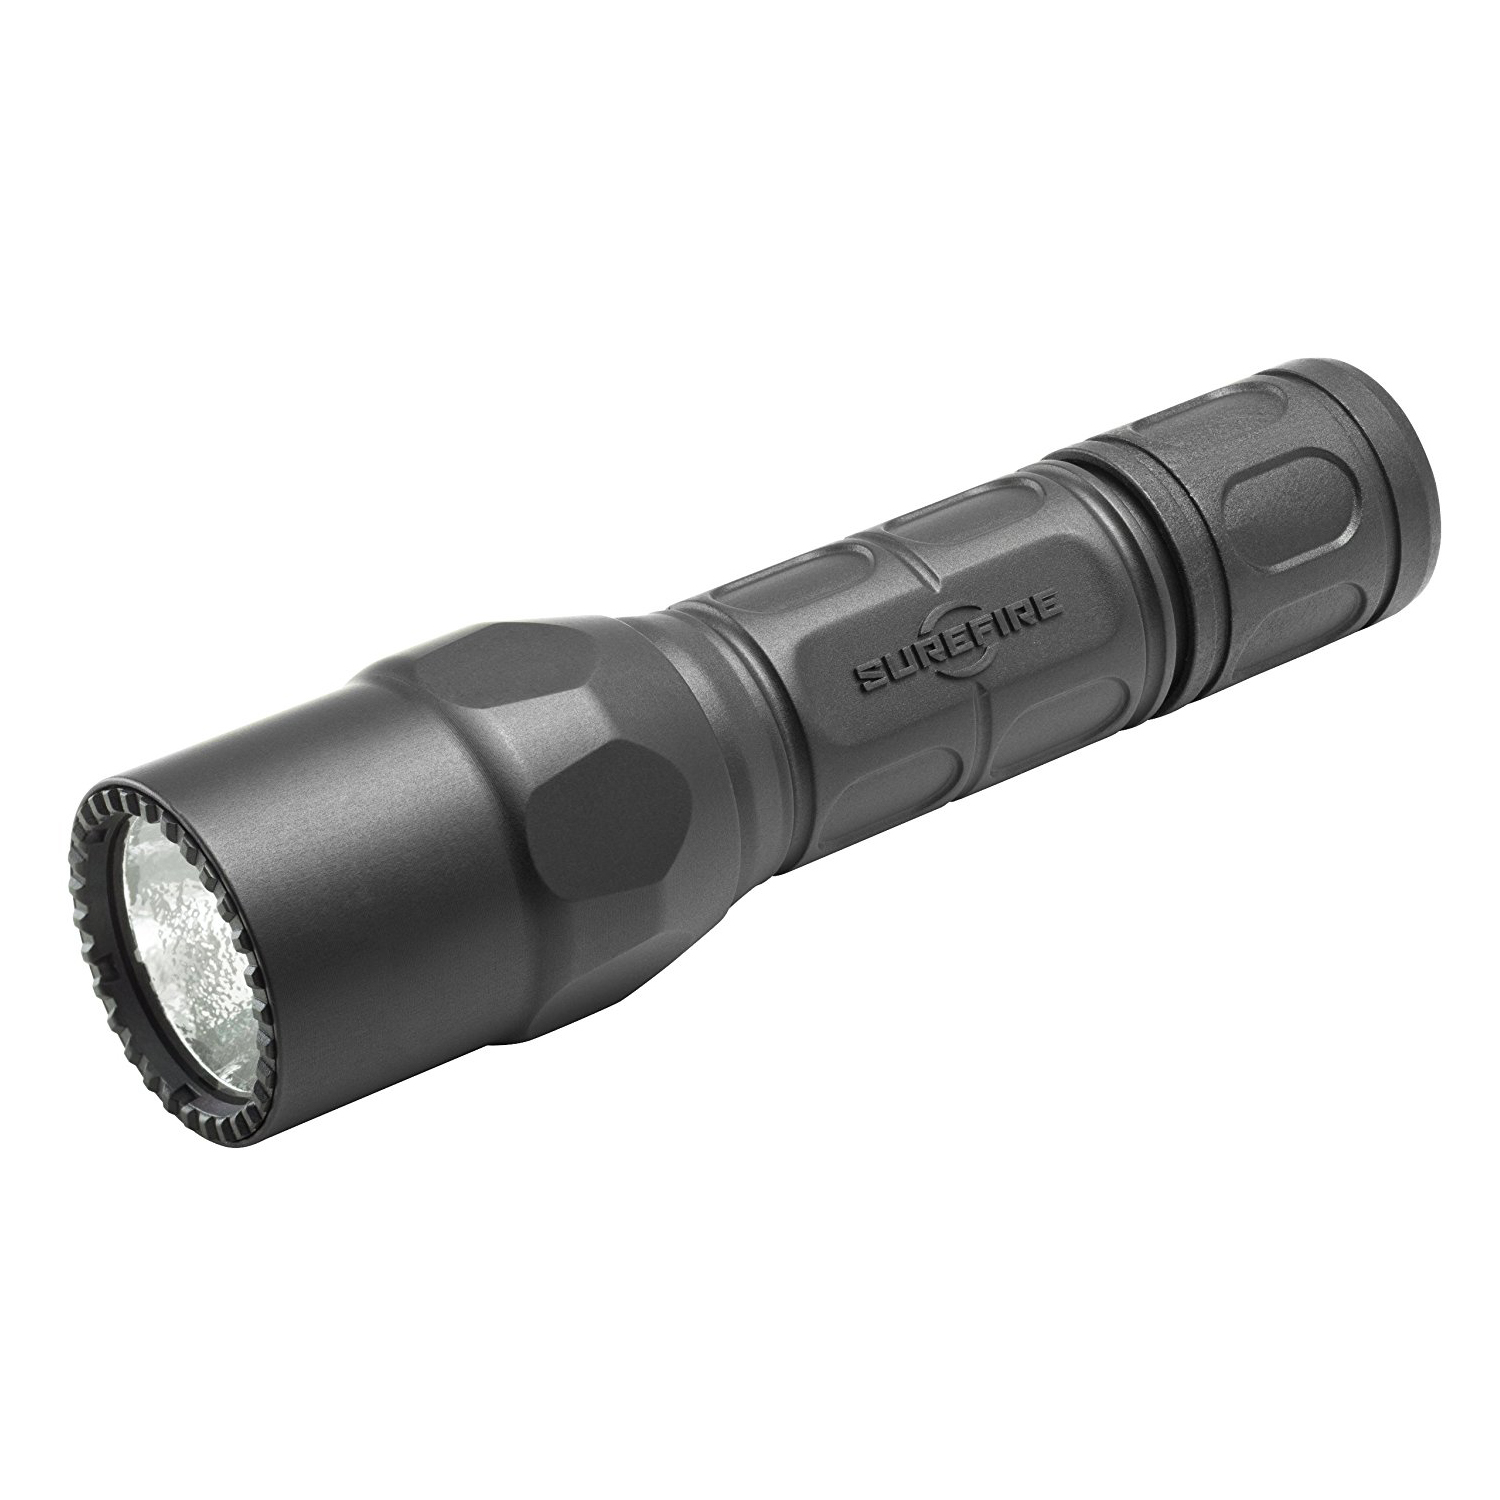 Click here to buy Surefire G2X-LE Dual-Output LED Compact Flashlight 400 Lumens Black by Surefire.